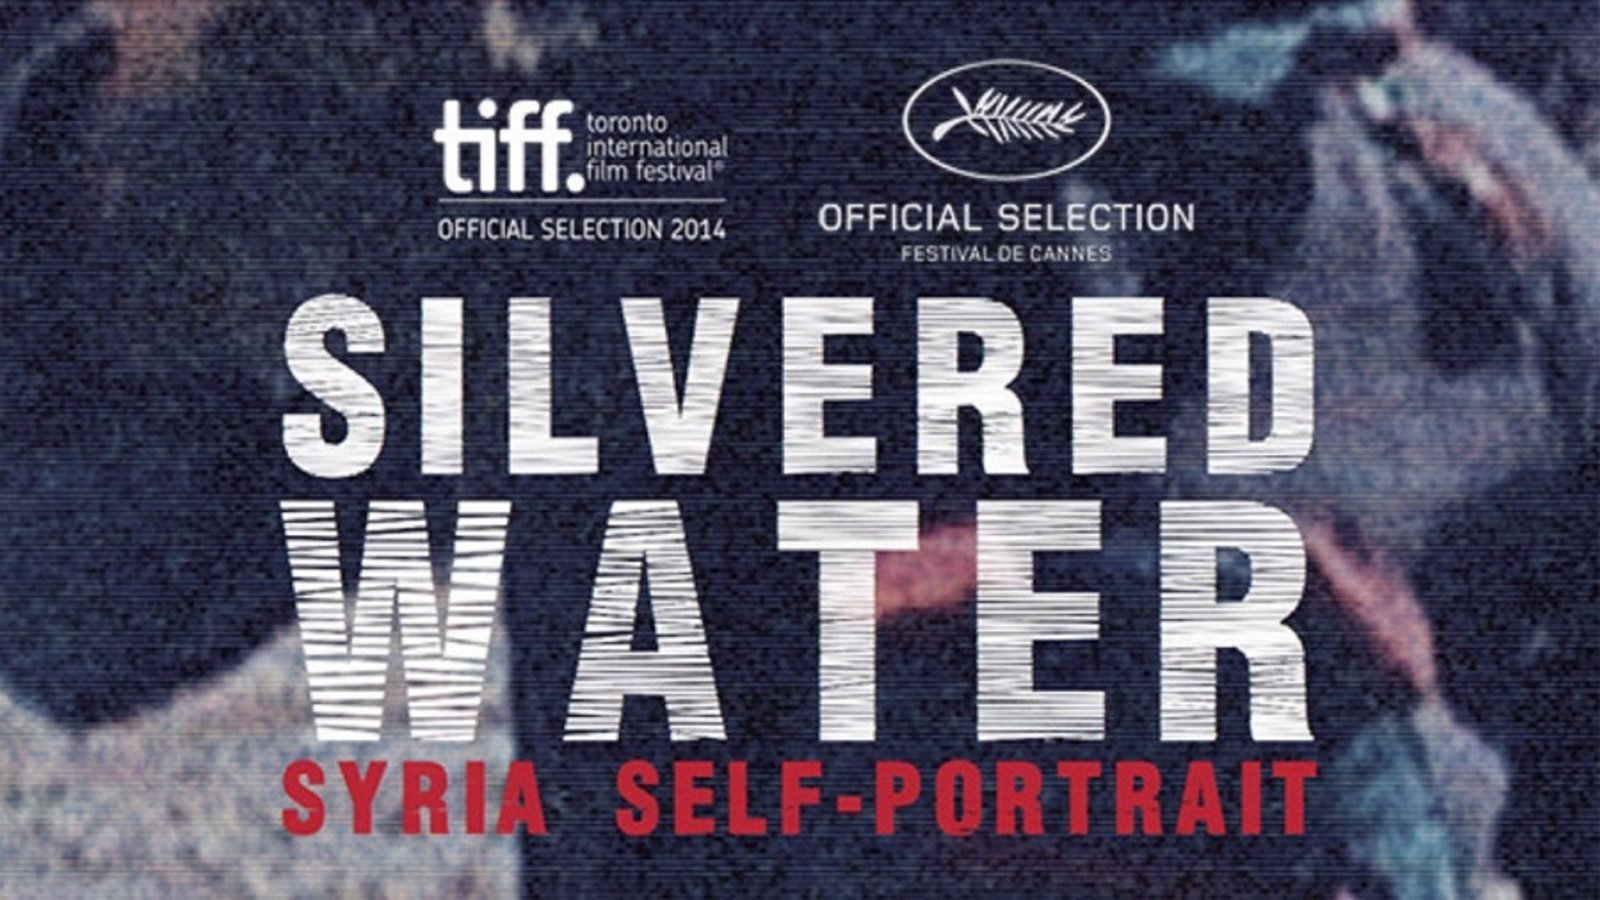 Silvered Water, Syria Self-Portrait - First-Hand Footage of the Syrian War